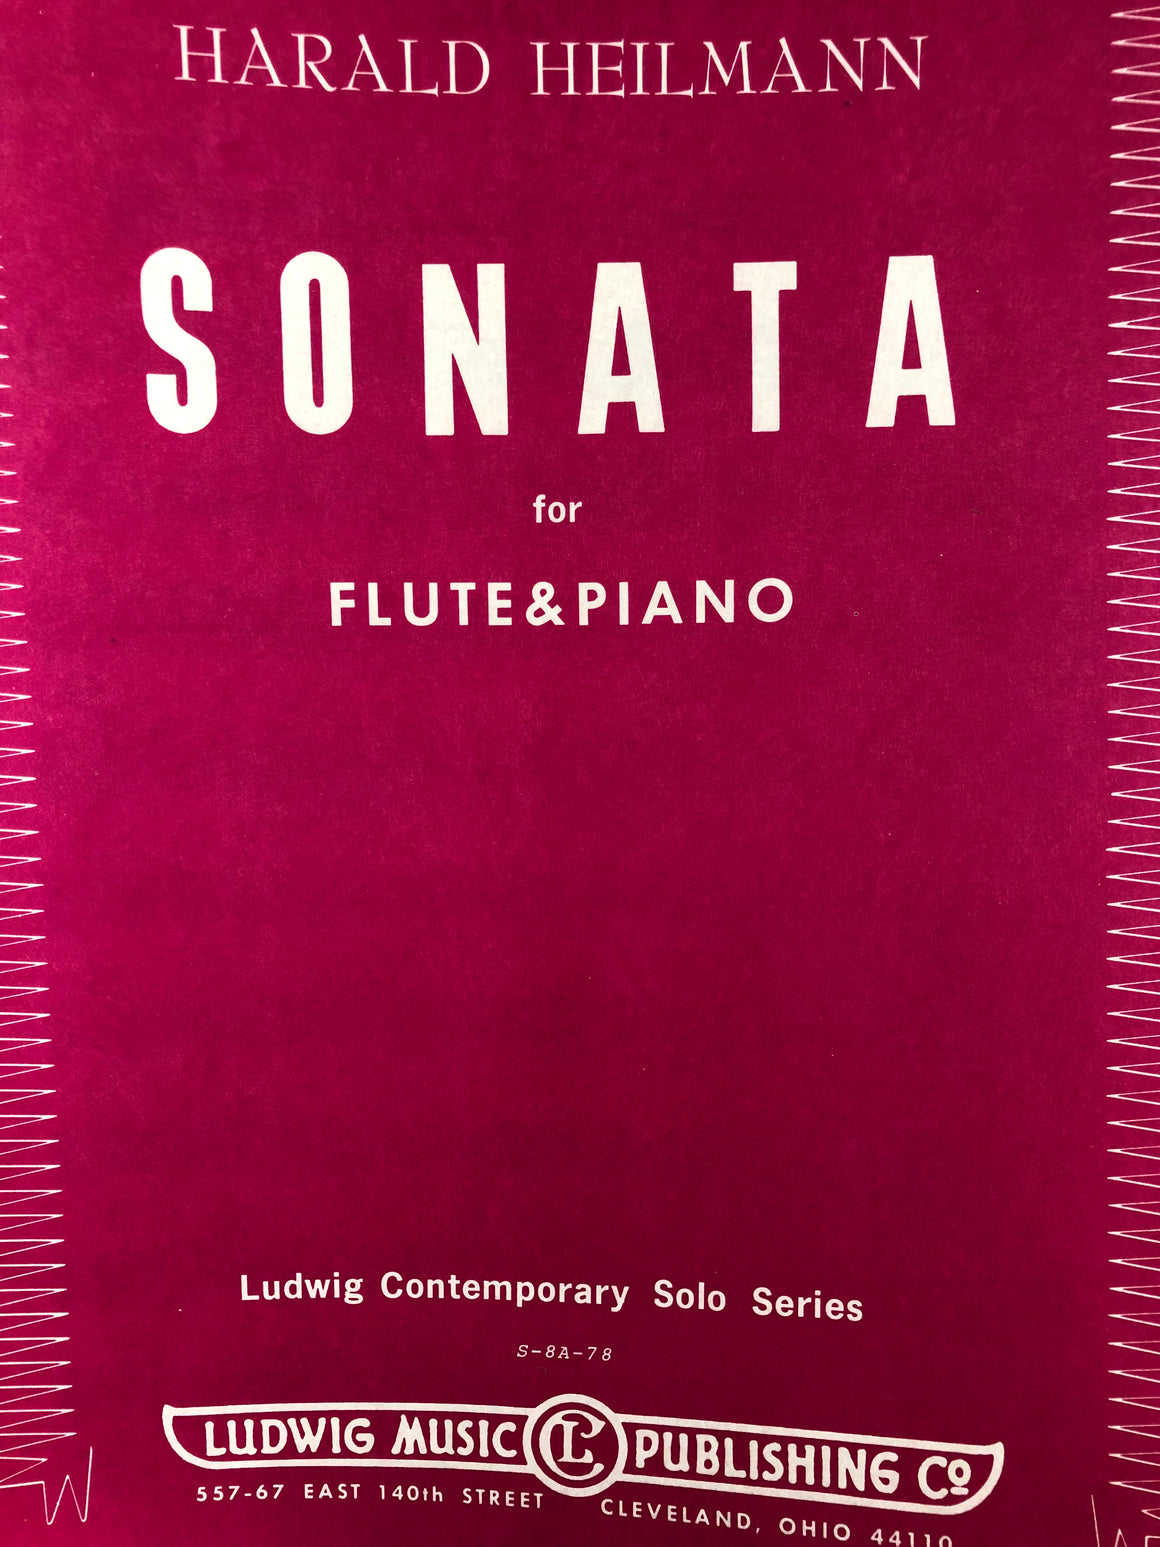 Sonata for Flute and Piano - Heilmann